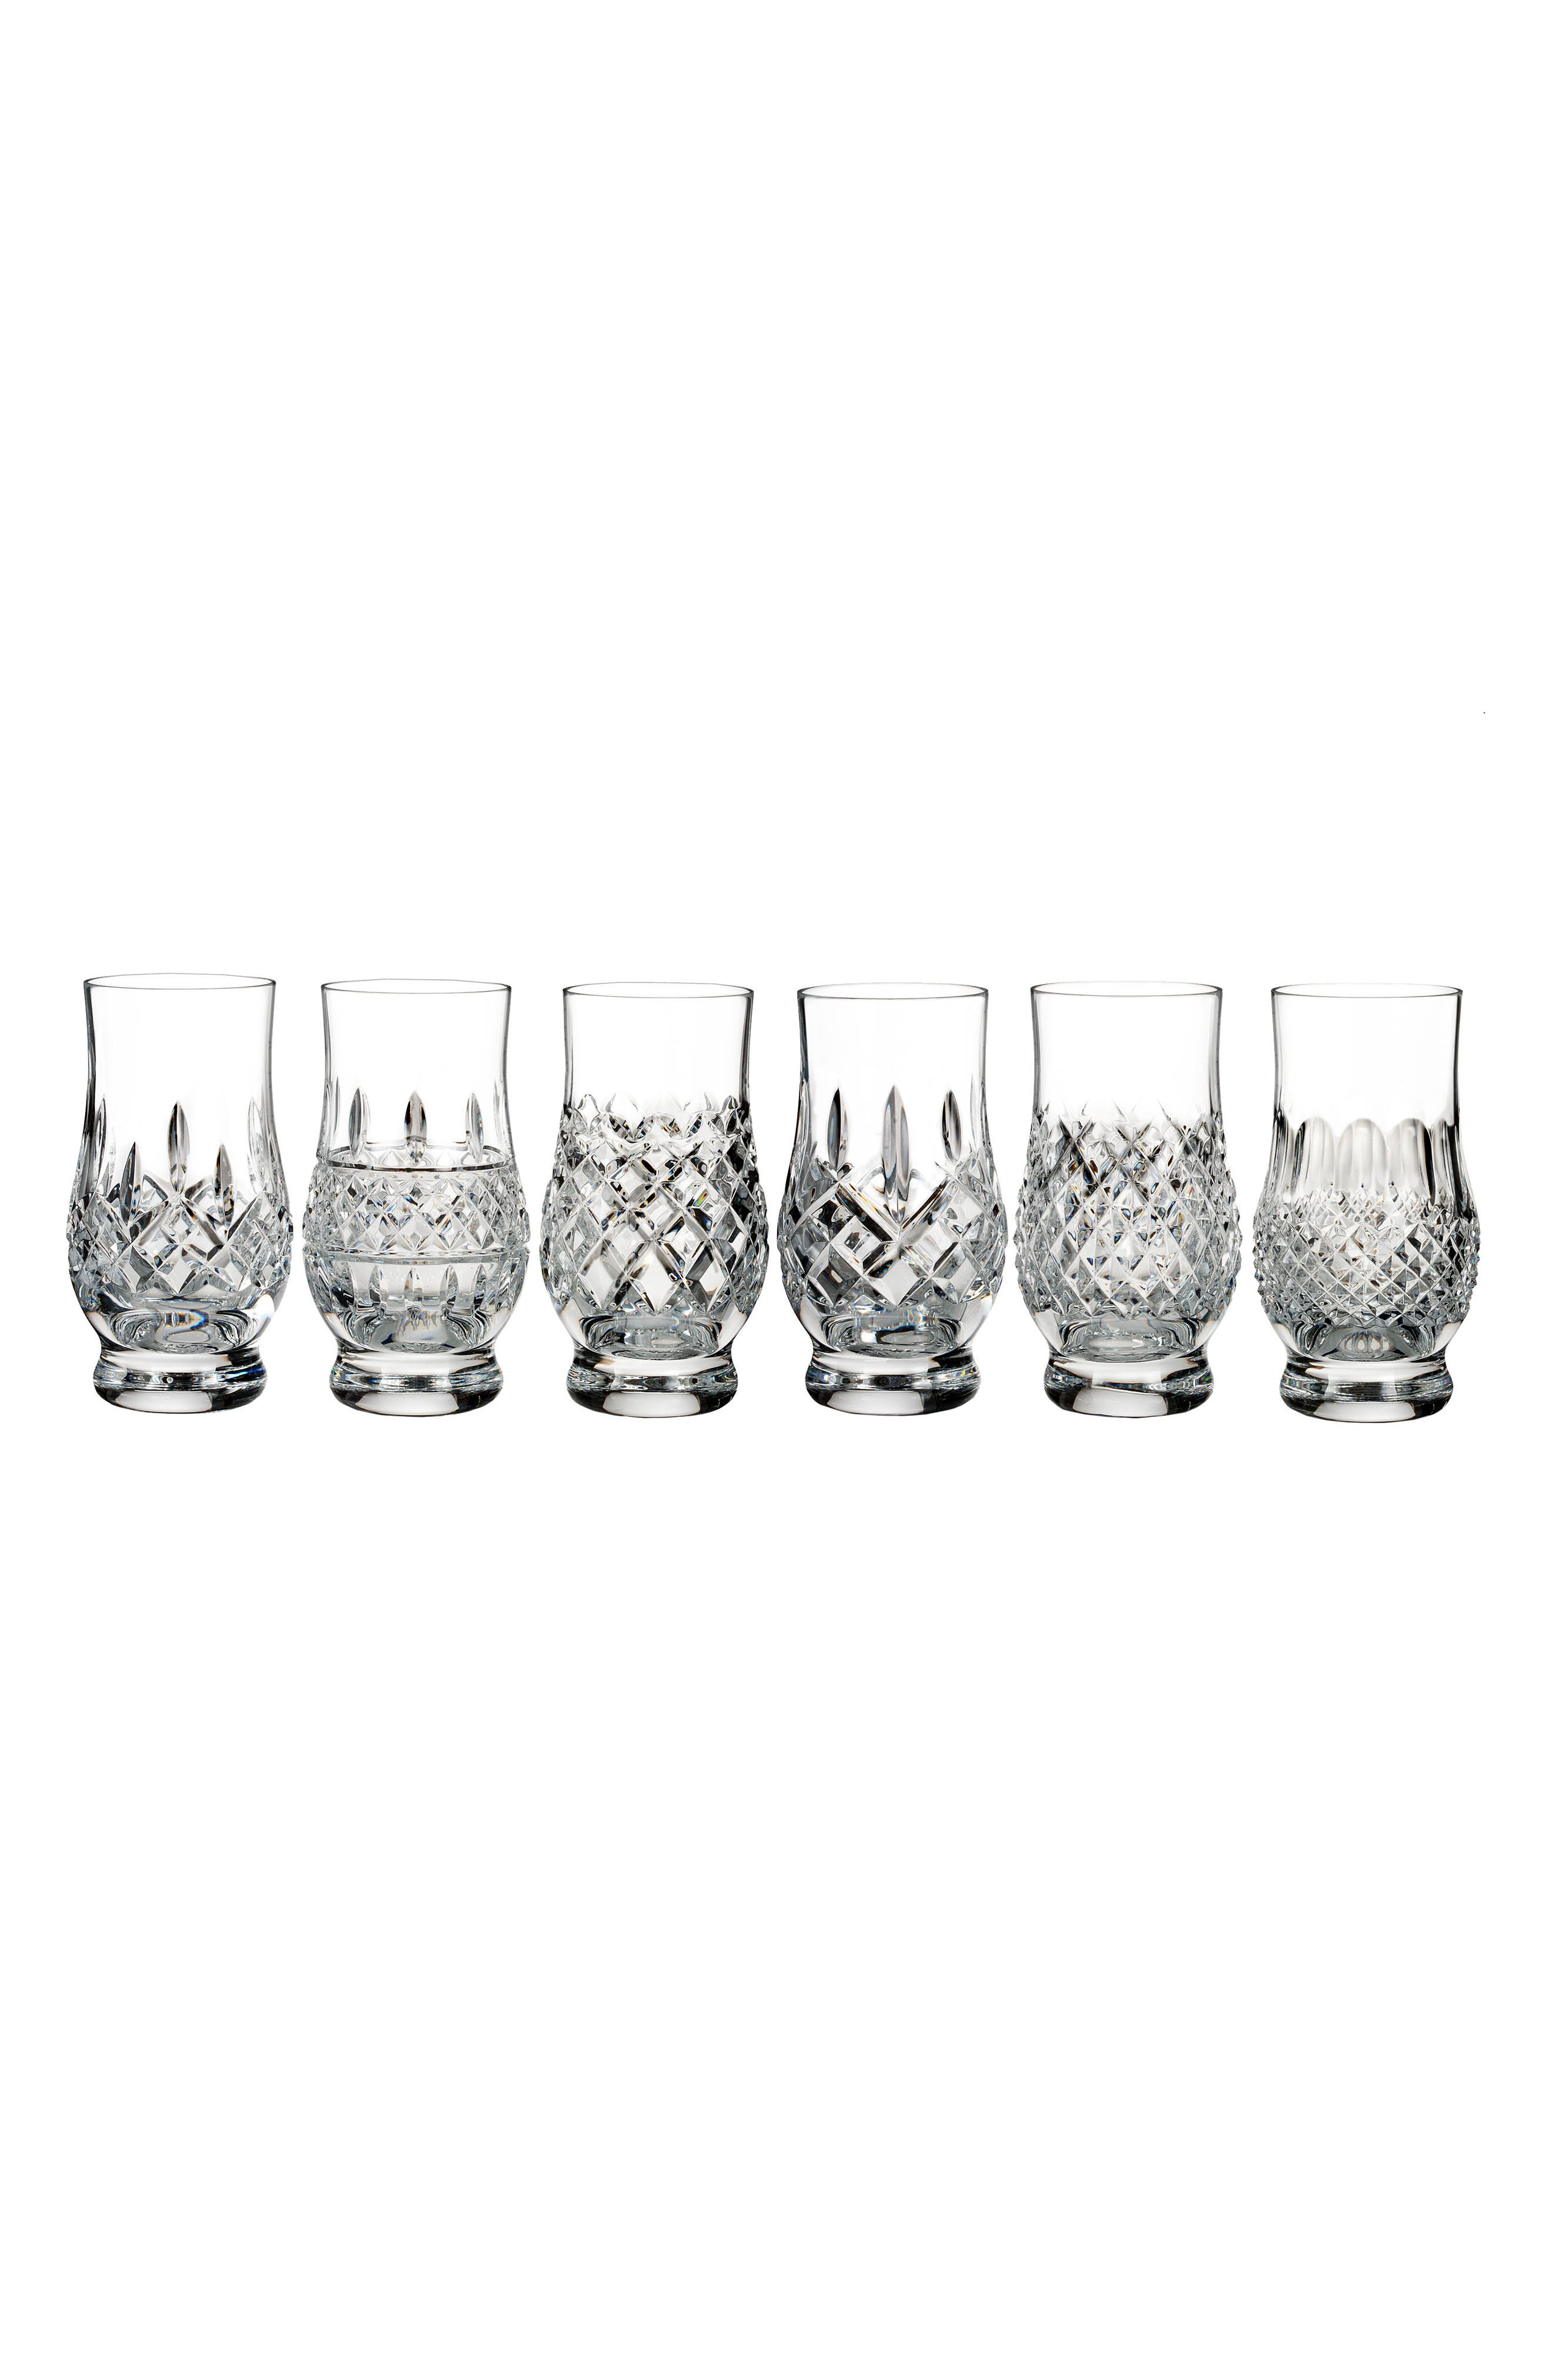 Connoisseur Set of 6 Footed Lead Crystal Tumblers,                             Main thumbnail 1, color,                             100